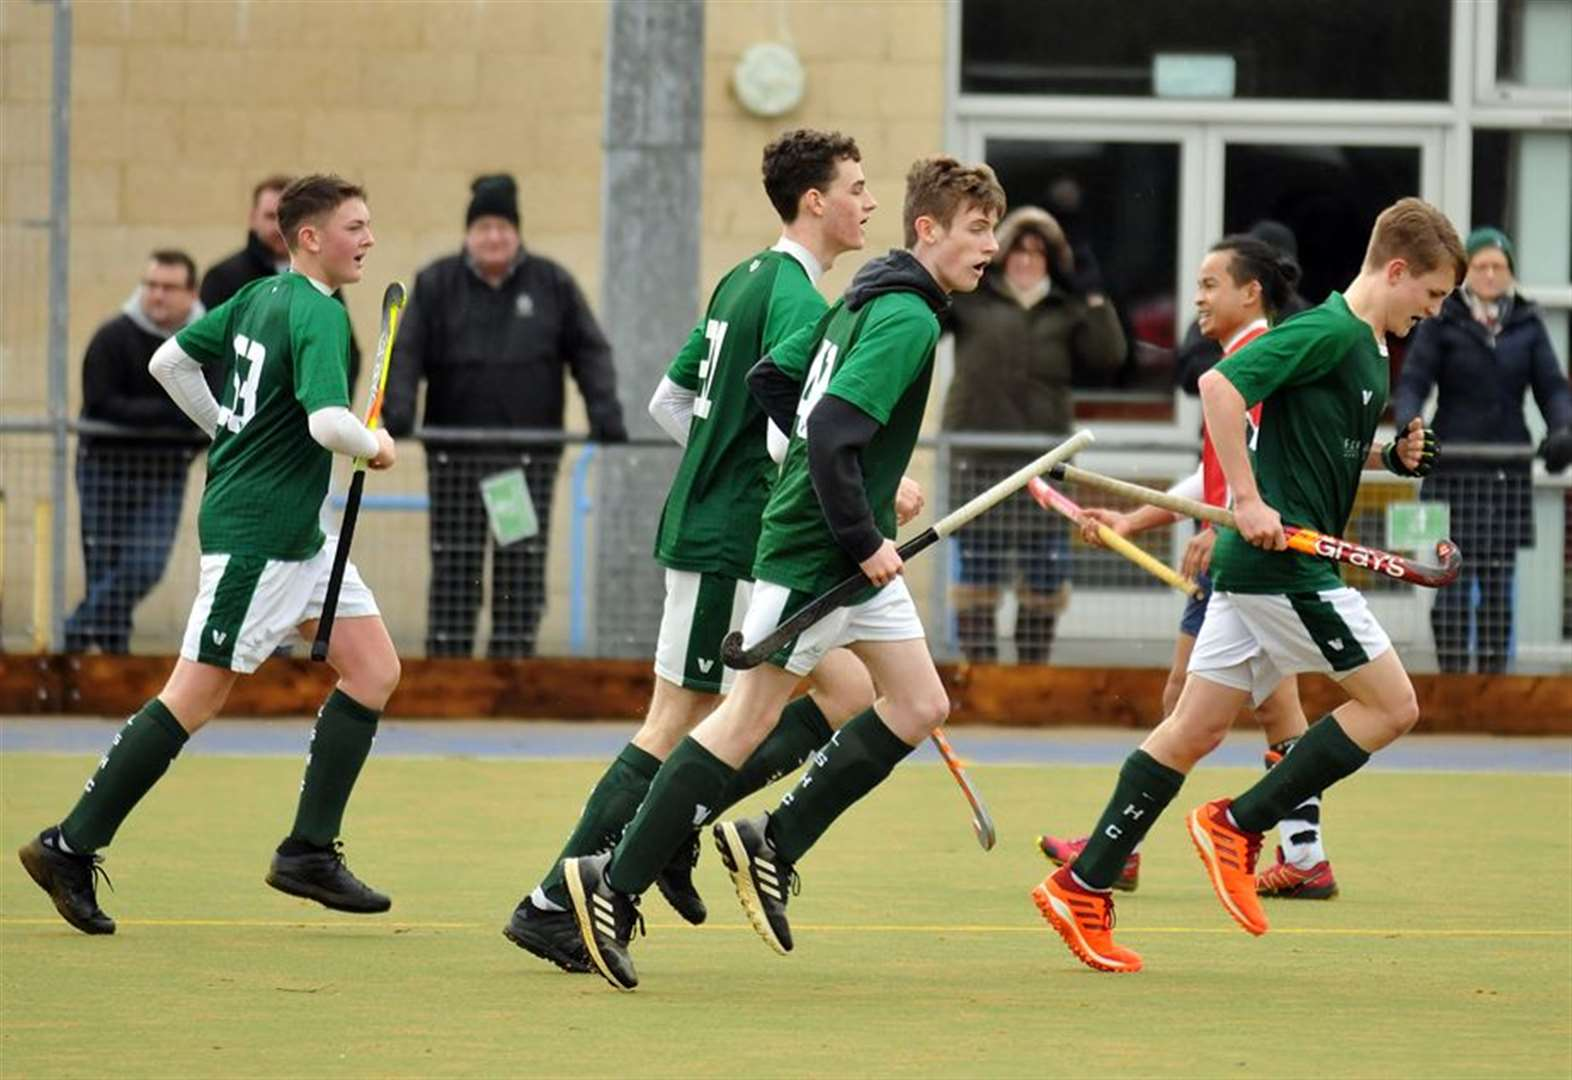 HOCKEY AND PHOTO GALLERY: Fourth win of the year for Sutton 1sts